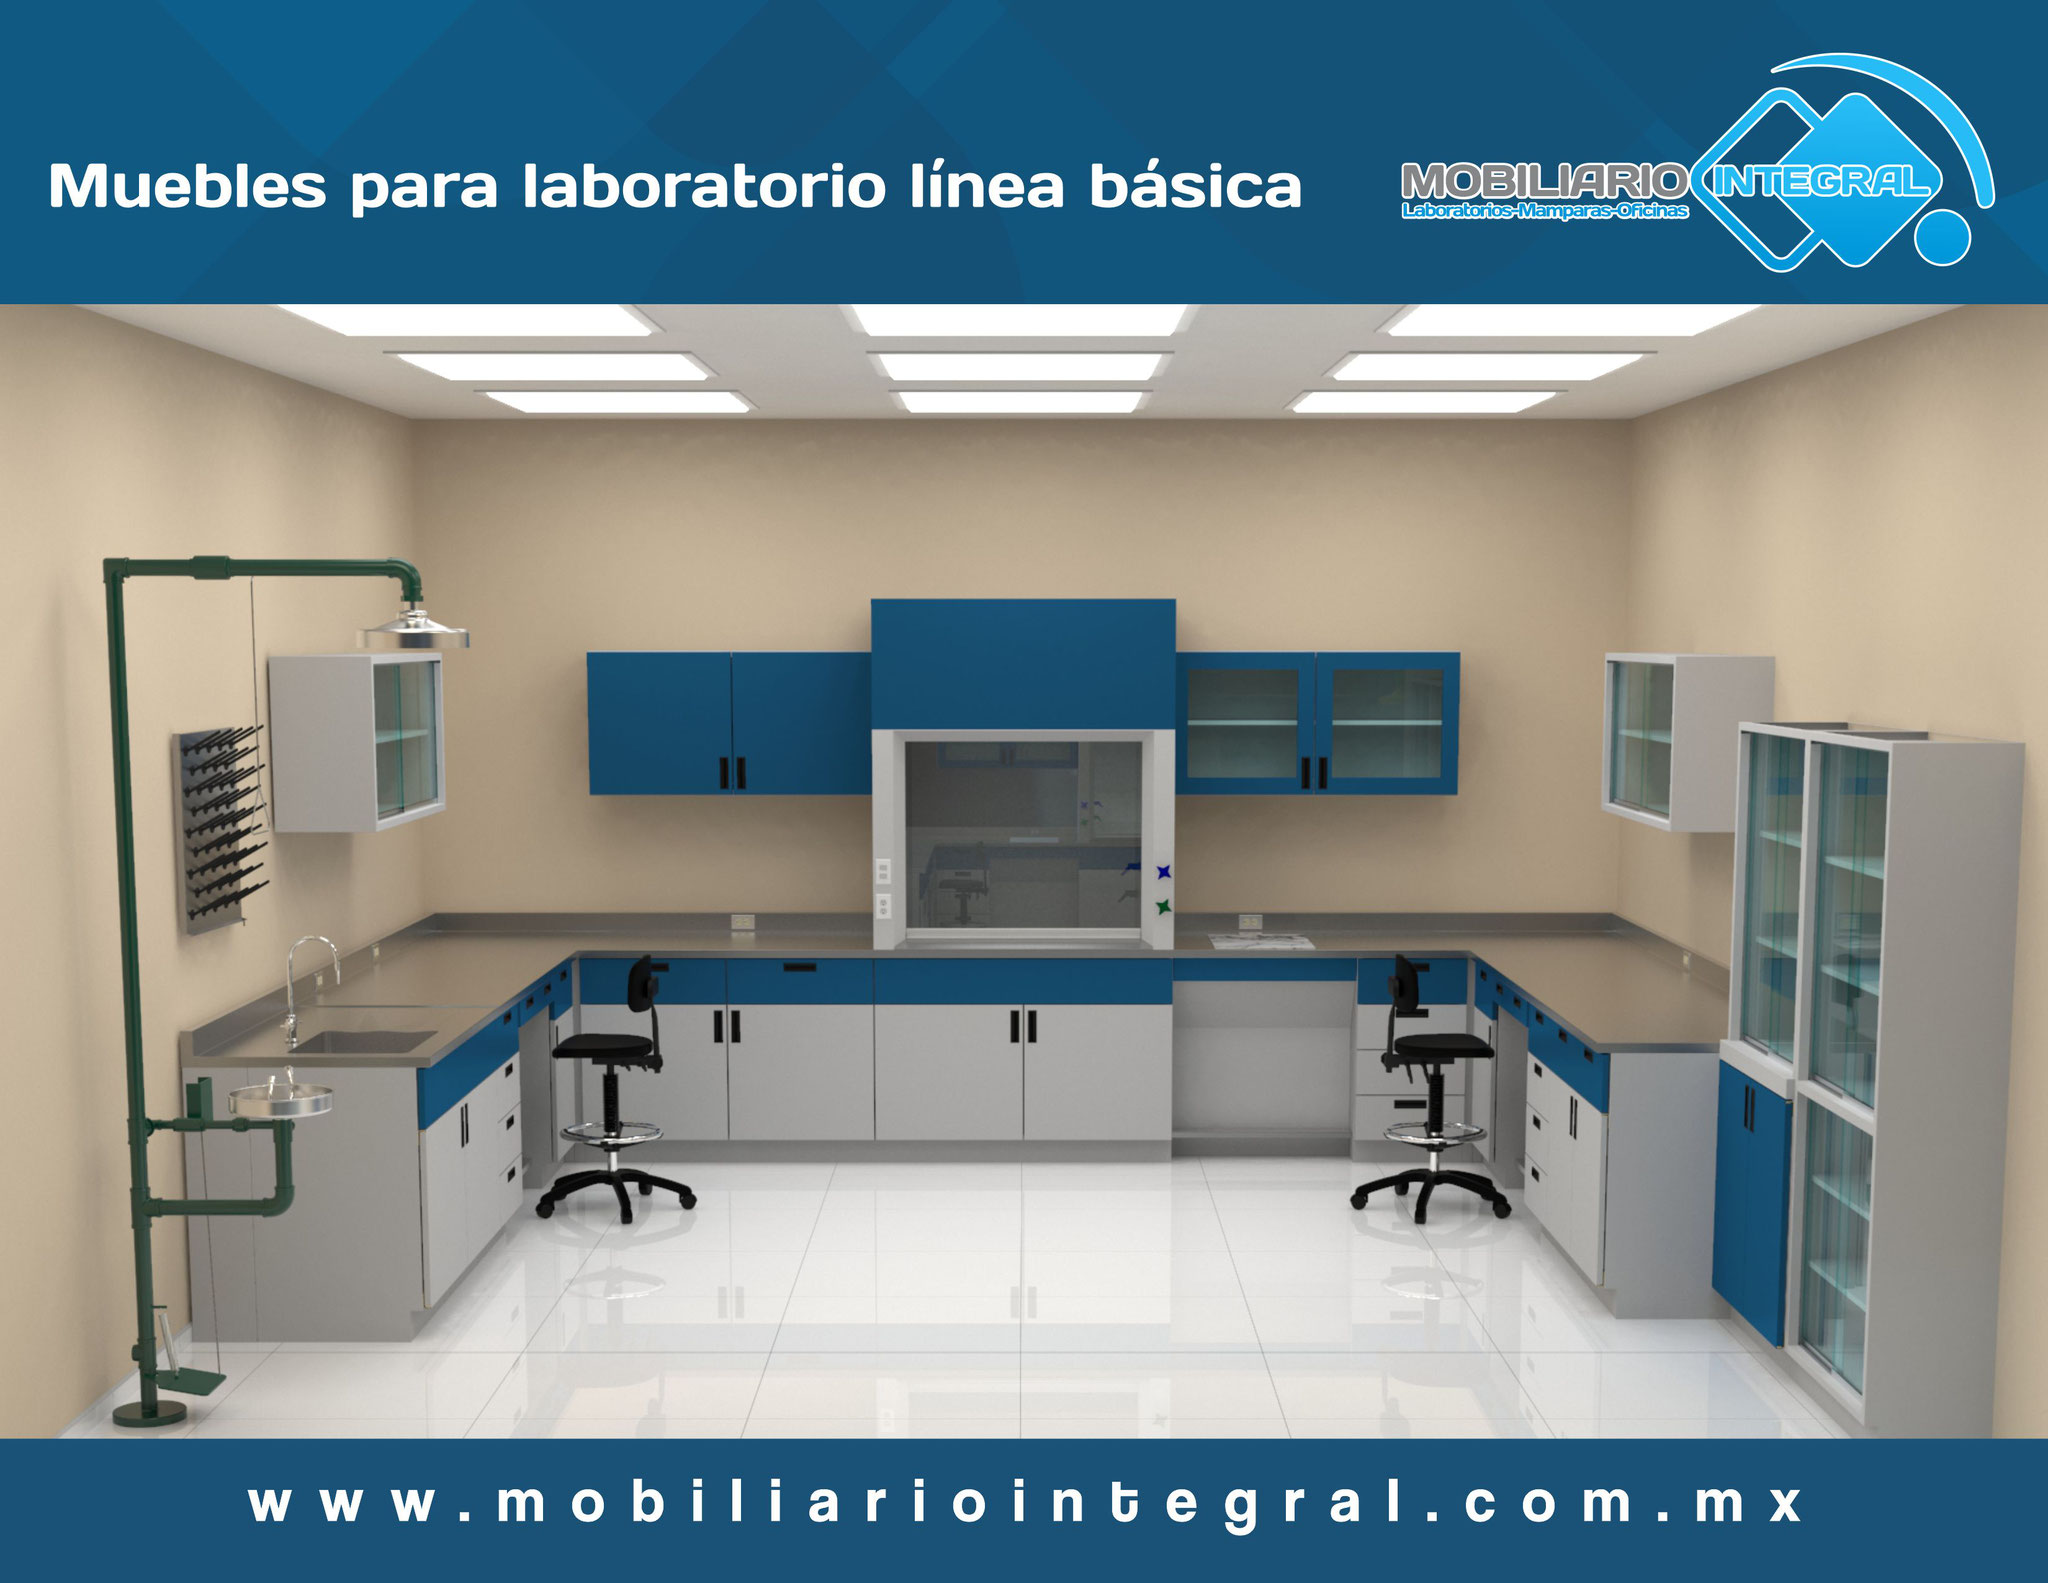 Muebles para laboratorio en Ensenada